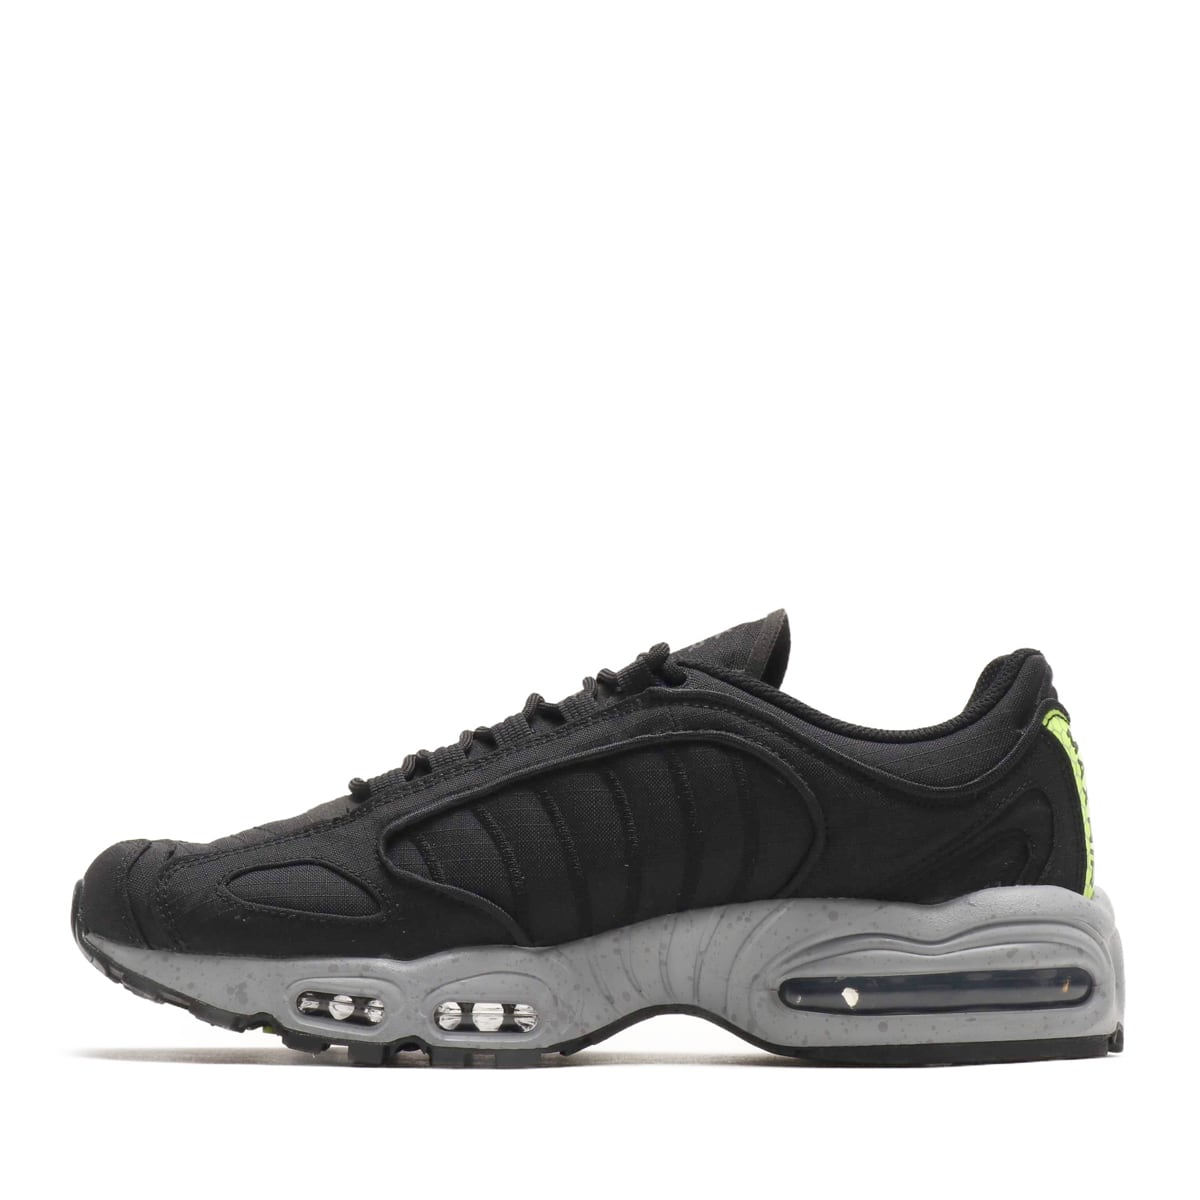 """NIKE AIR MAX TAILWIND IV SP BLACK/WOLF GREY-VOLT 19SU-S""_photo_3"